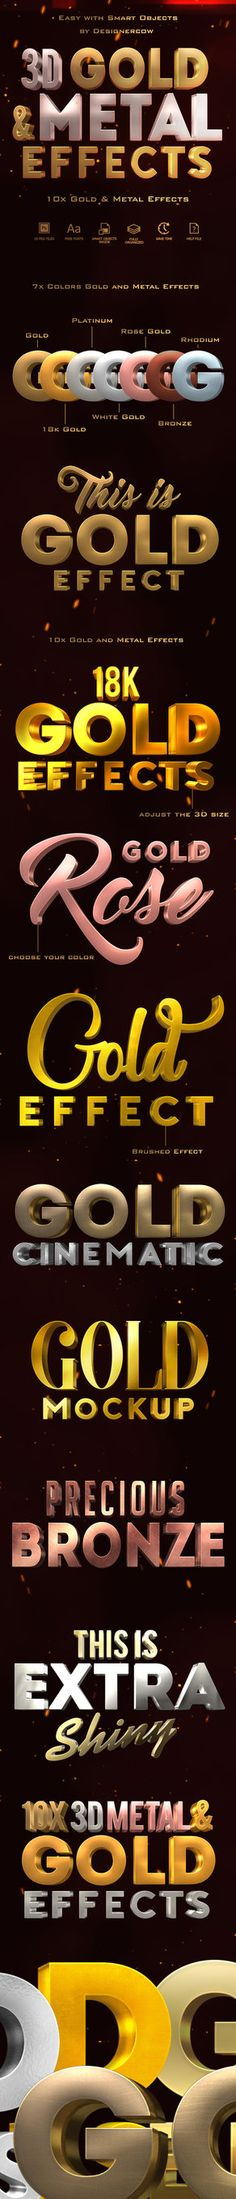 DOWNLOAD: goo.gl/dPymEA 3D Gold and Metal EffectsRealistic 3D Gold and Metal effects. Easy to make stunning 3D Gold and Metal text with this 3D Mockup. Easy to change the colors of the ...